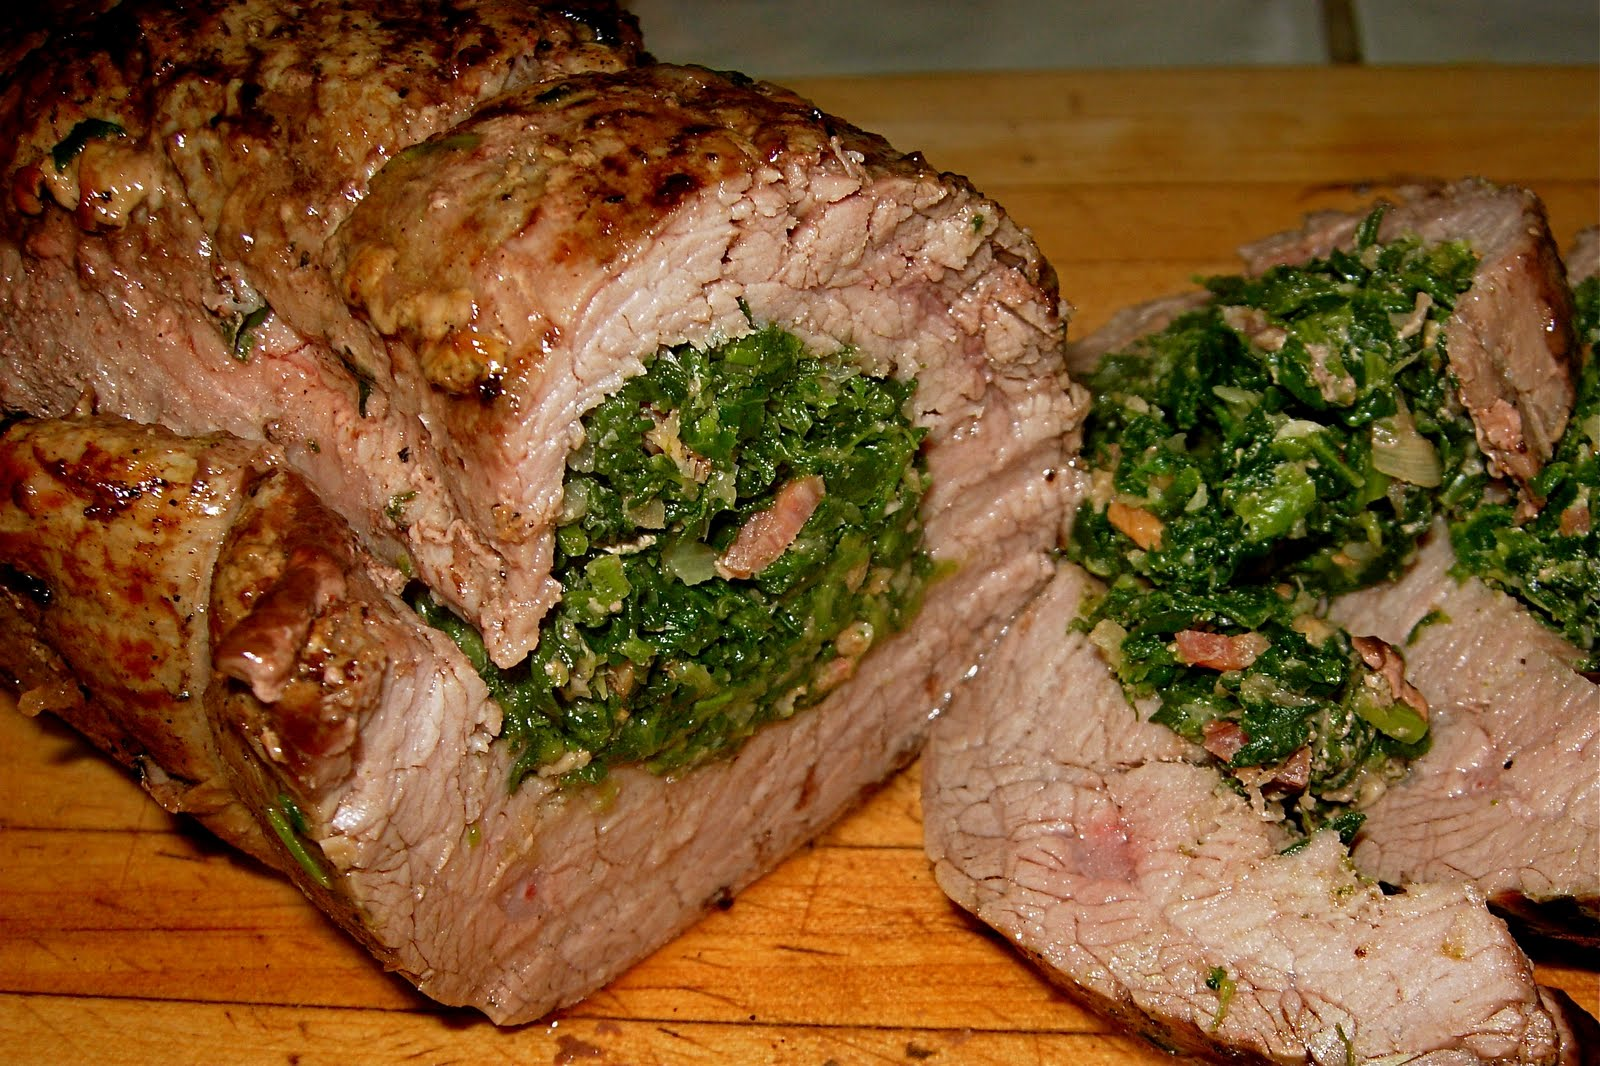 CFSCC presents: EAT THIS!: Festive Rolled Flank Steak with Spinach